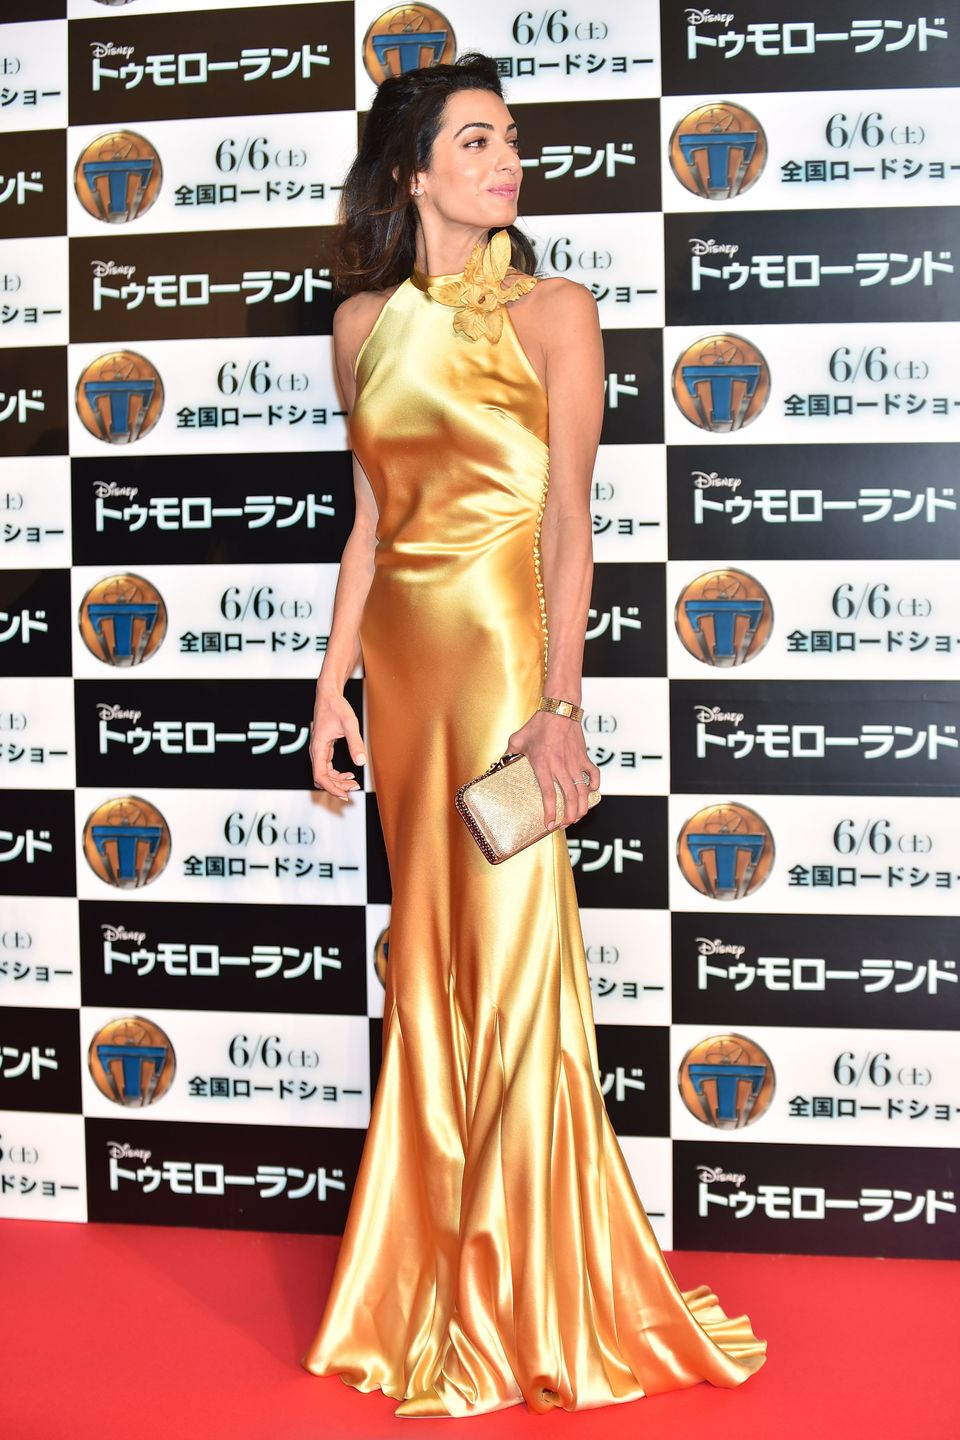 TOKYO, JAPAN - MAY 25:  Lawyer Amal Clooney attends the Tokyo premiere of 'Tomorrowland' at Roppongi Hills on May 25, 2015 in